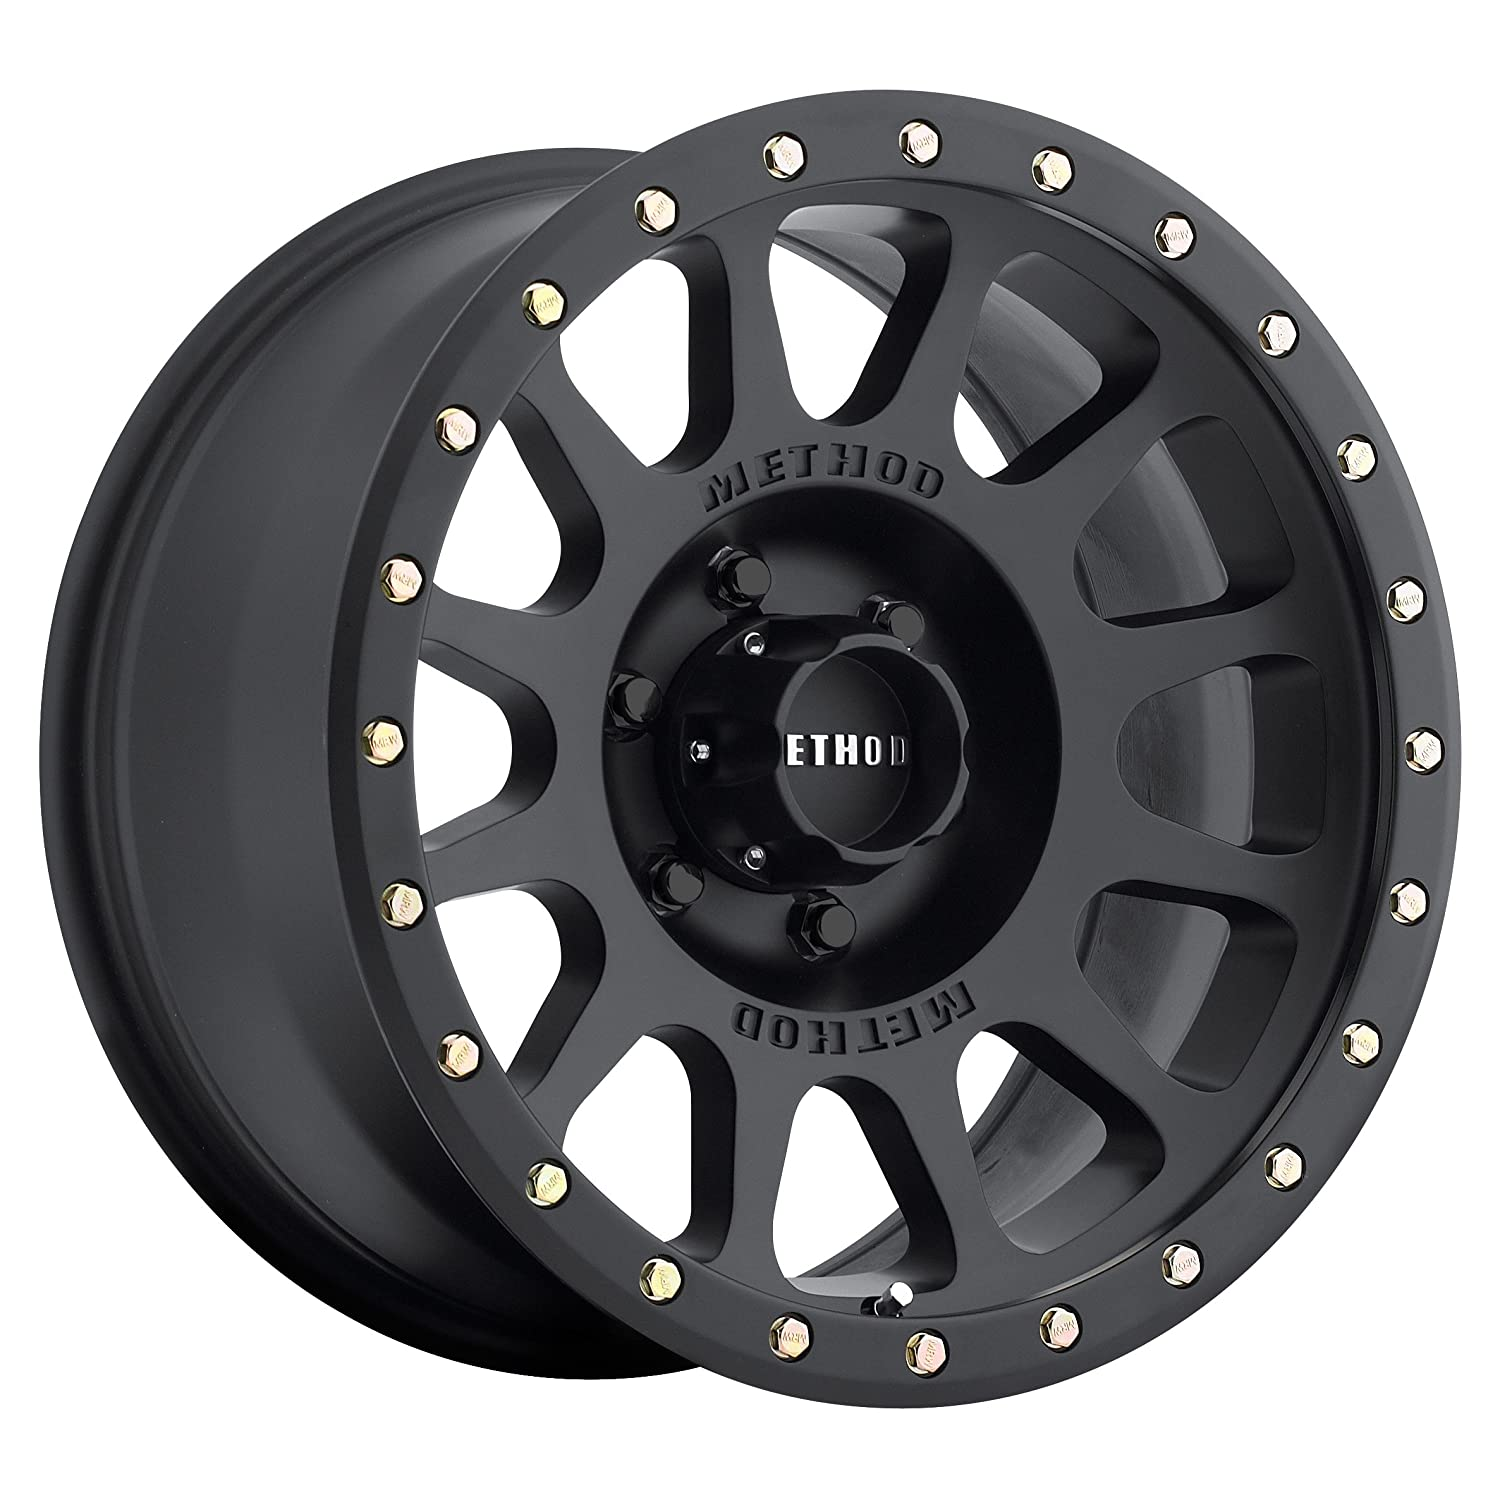 Method Race Wheels NV Matte Black Wheel with Zinc Plated Accent Bolts (18x9'/8x170mm) -12 mm offset MR30589087512N